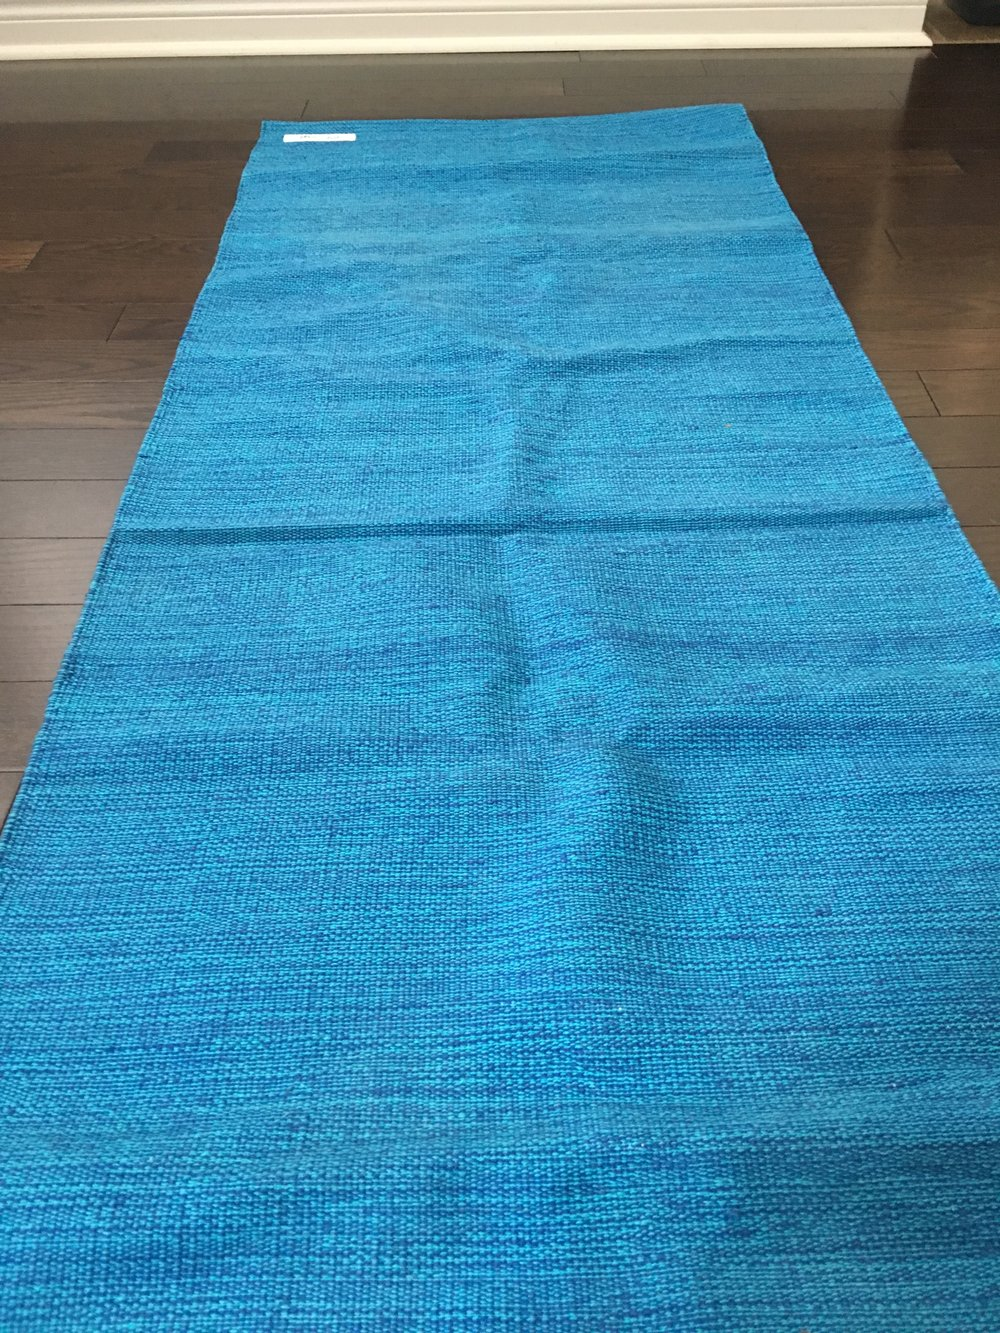 Here's my Ekaminhale Yoga Rug in blue.  Its stiff and firm but I love it.  You can get your own from  Ekaminhale  or if you are in Canada, you can get them from  Amazon .